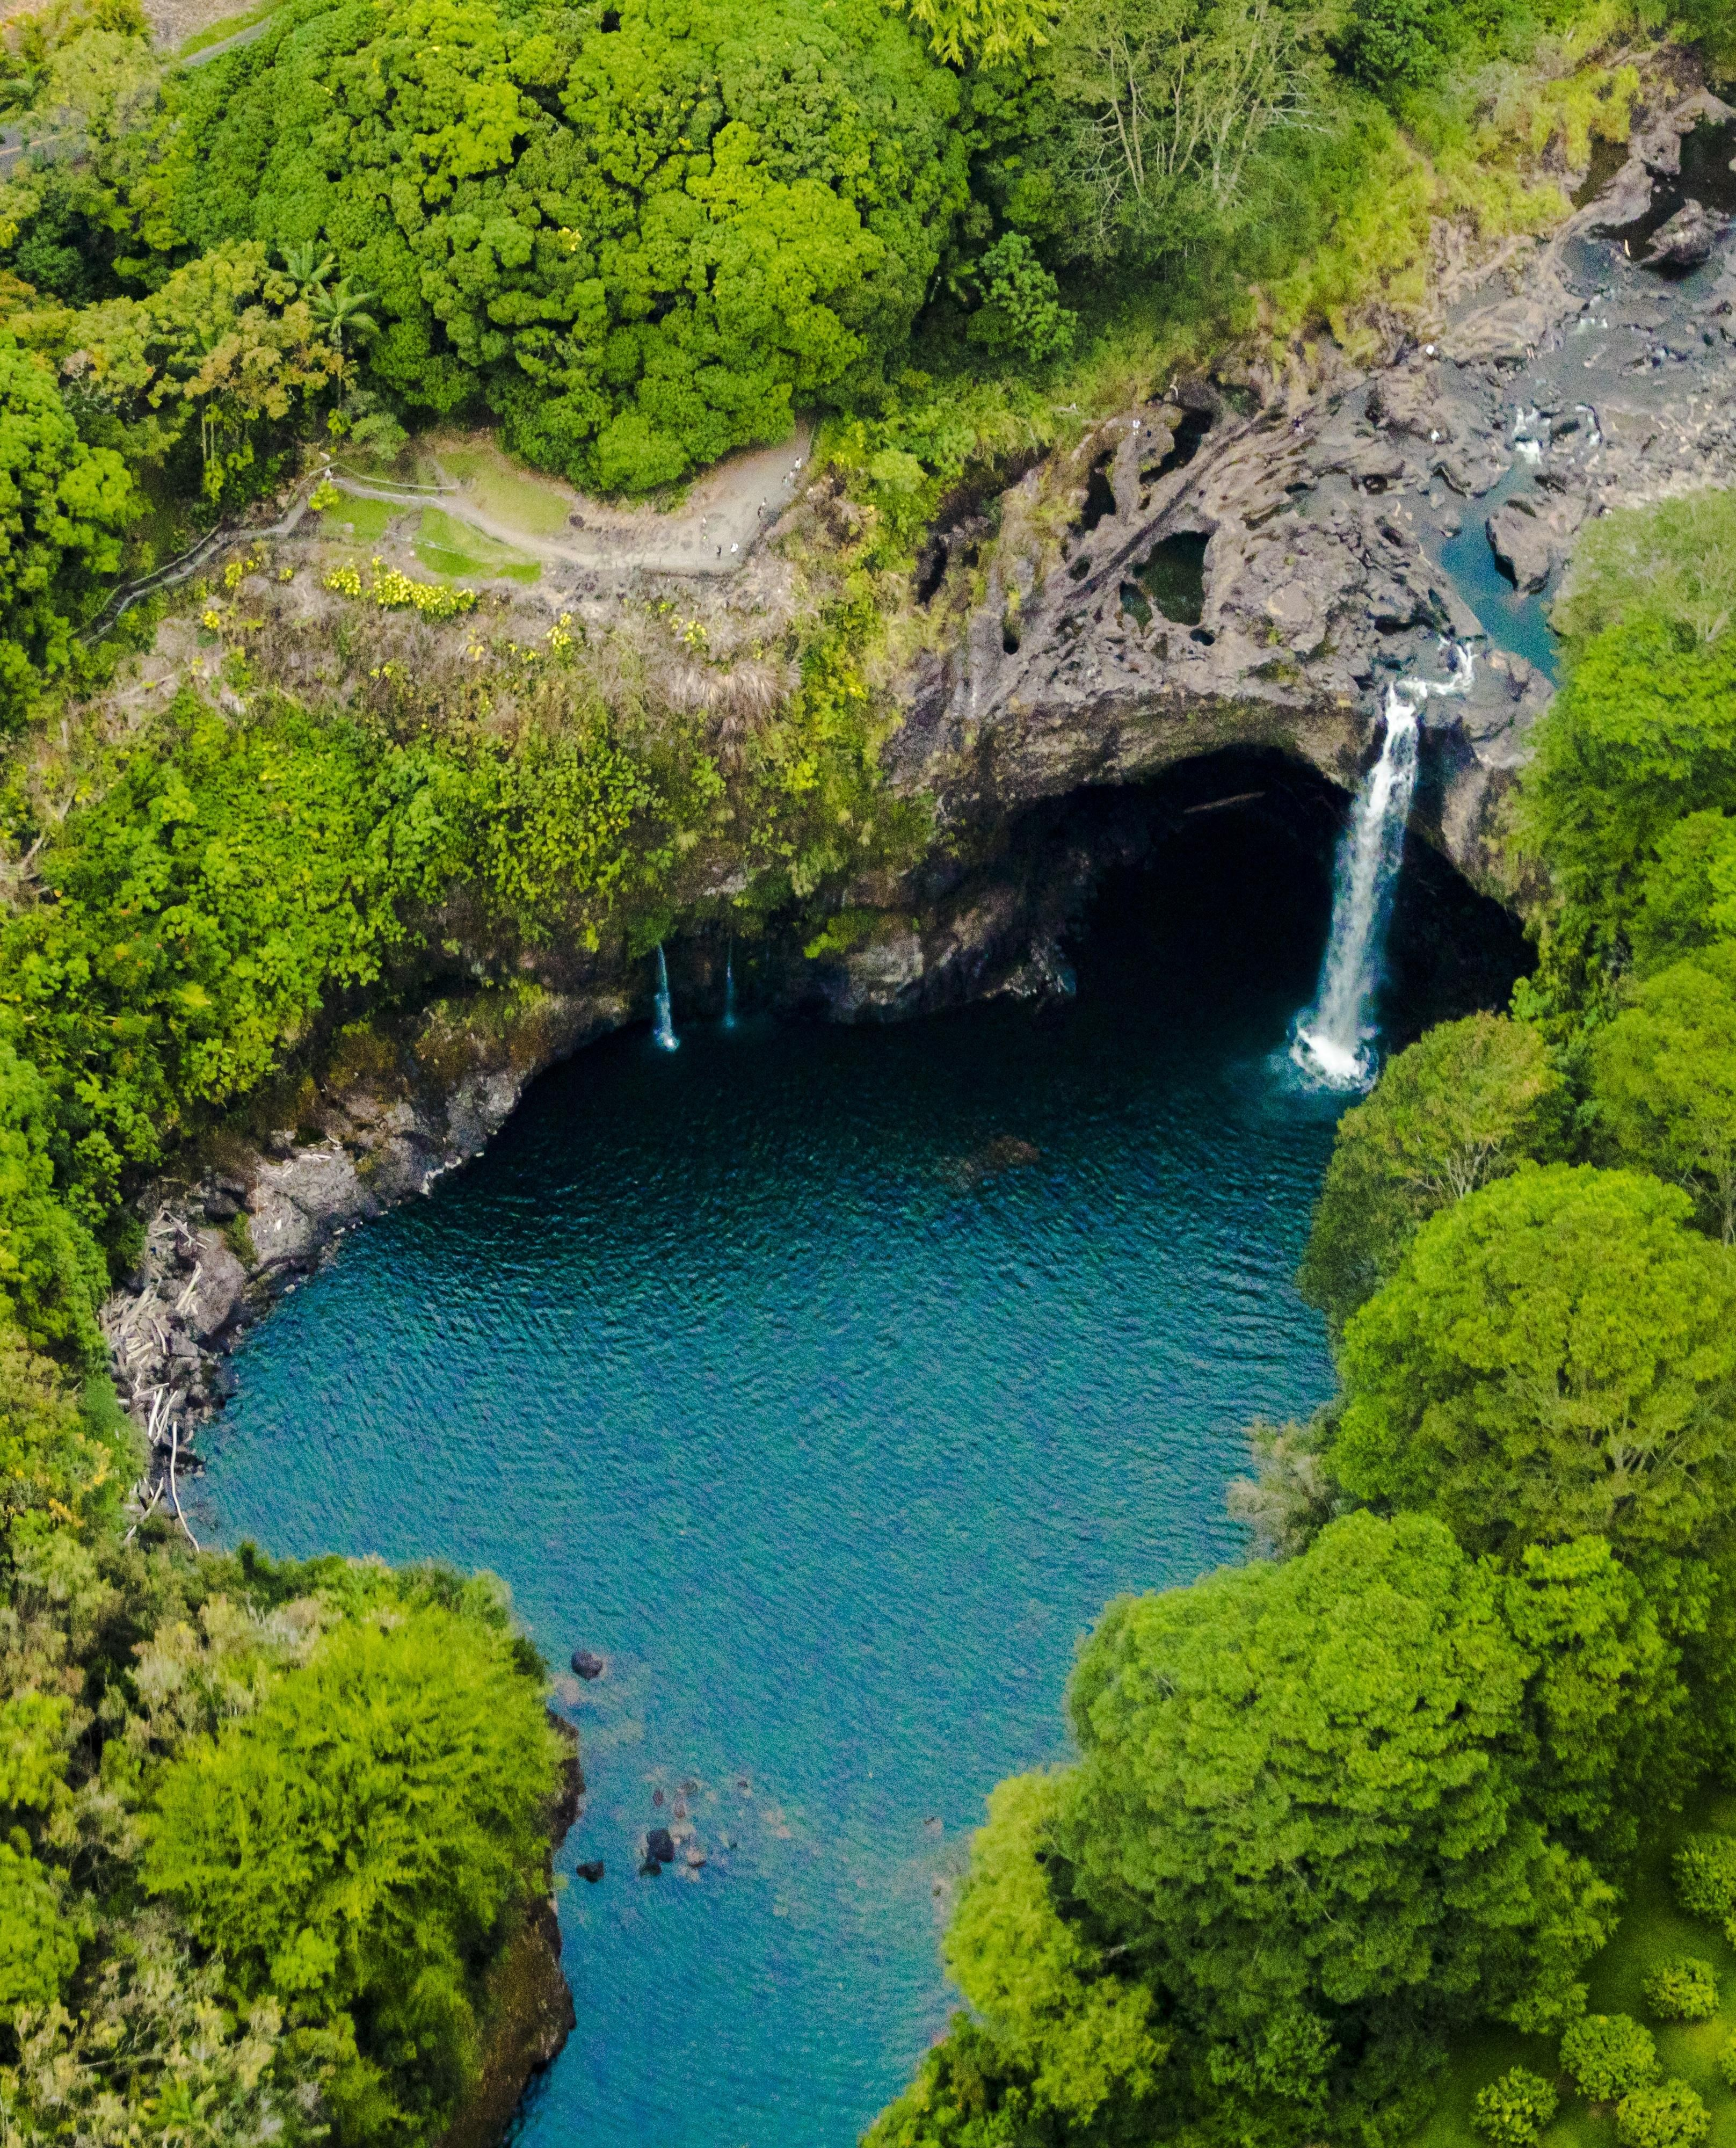 Rainbow falls in Hawaii from above [3233x4000] #nature and Science #rainbowfalls